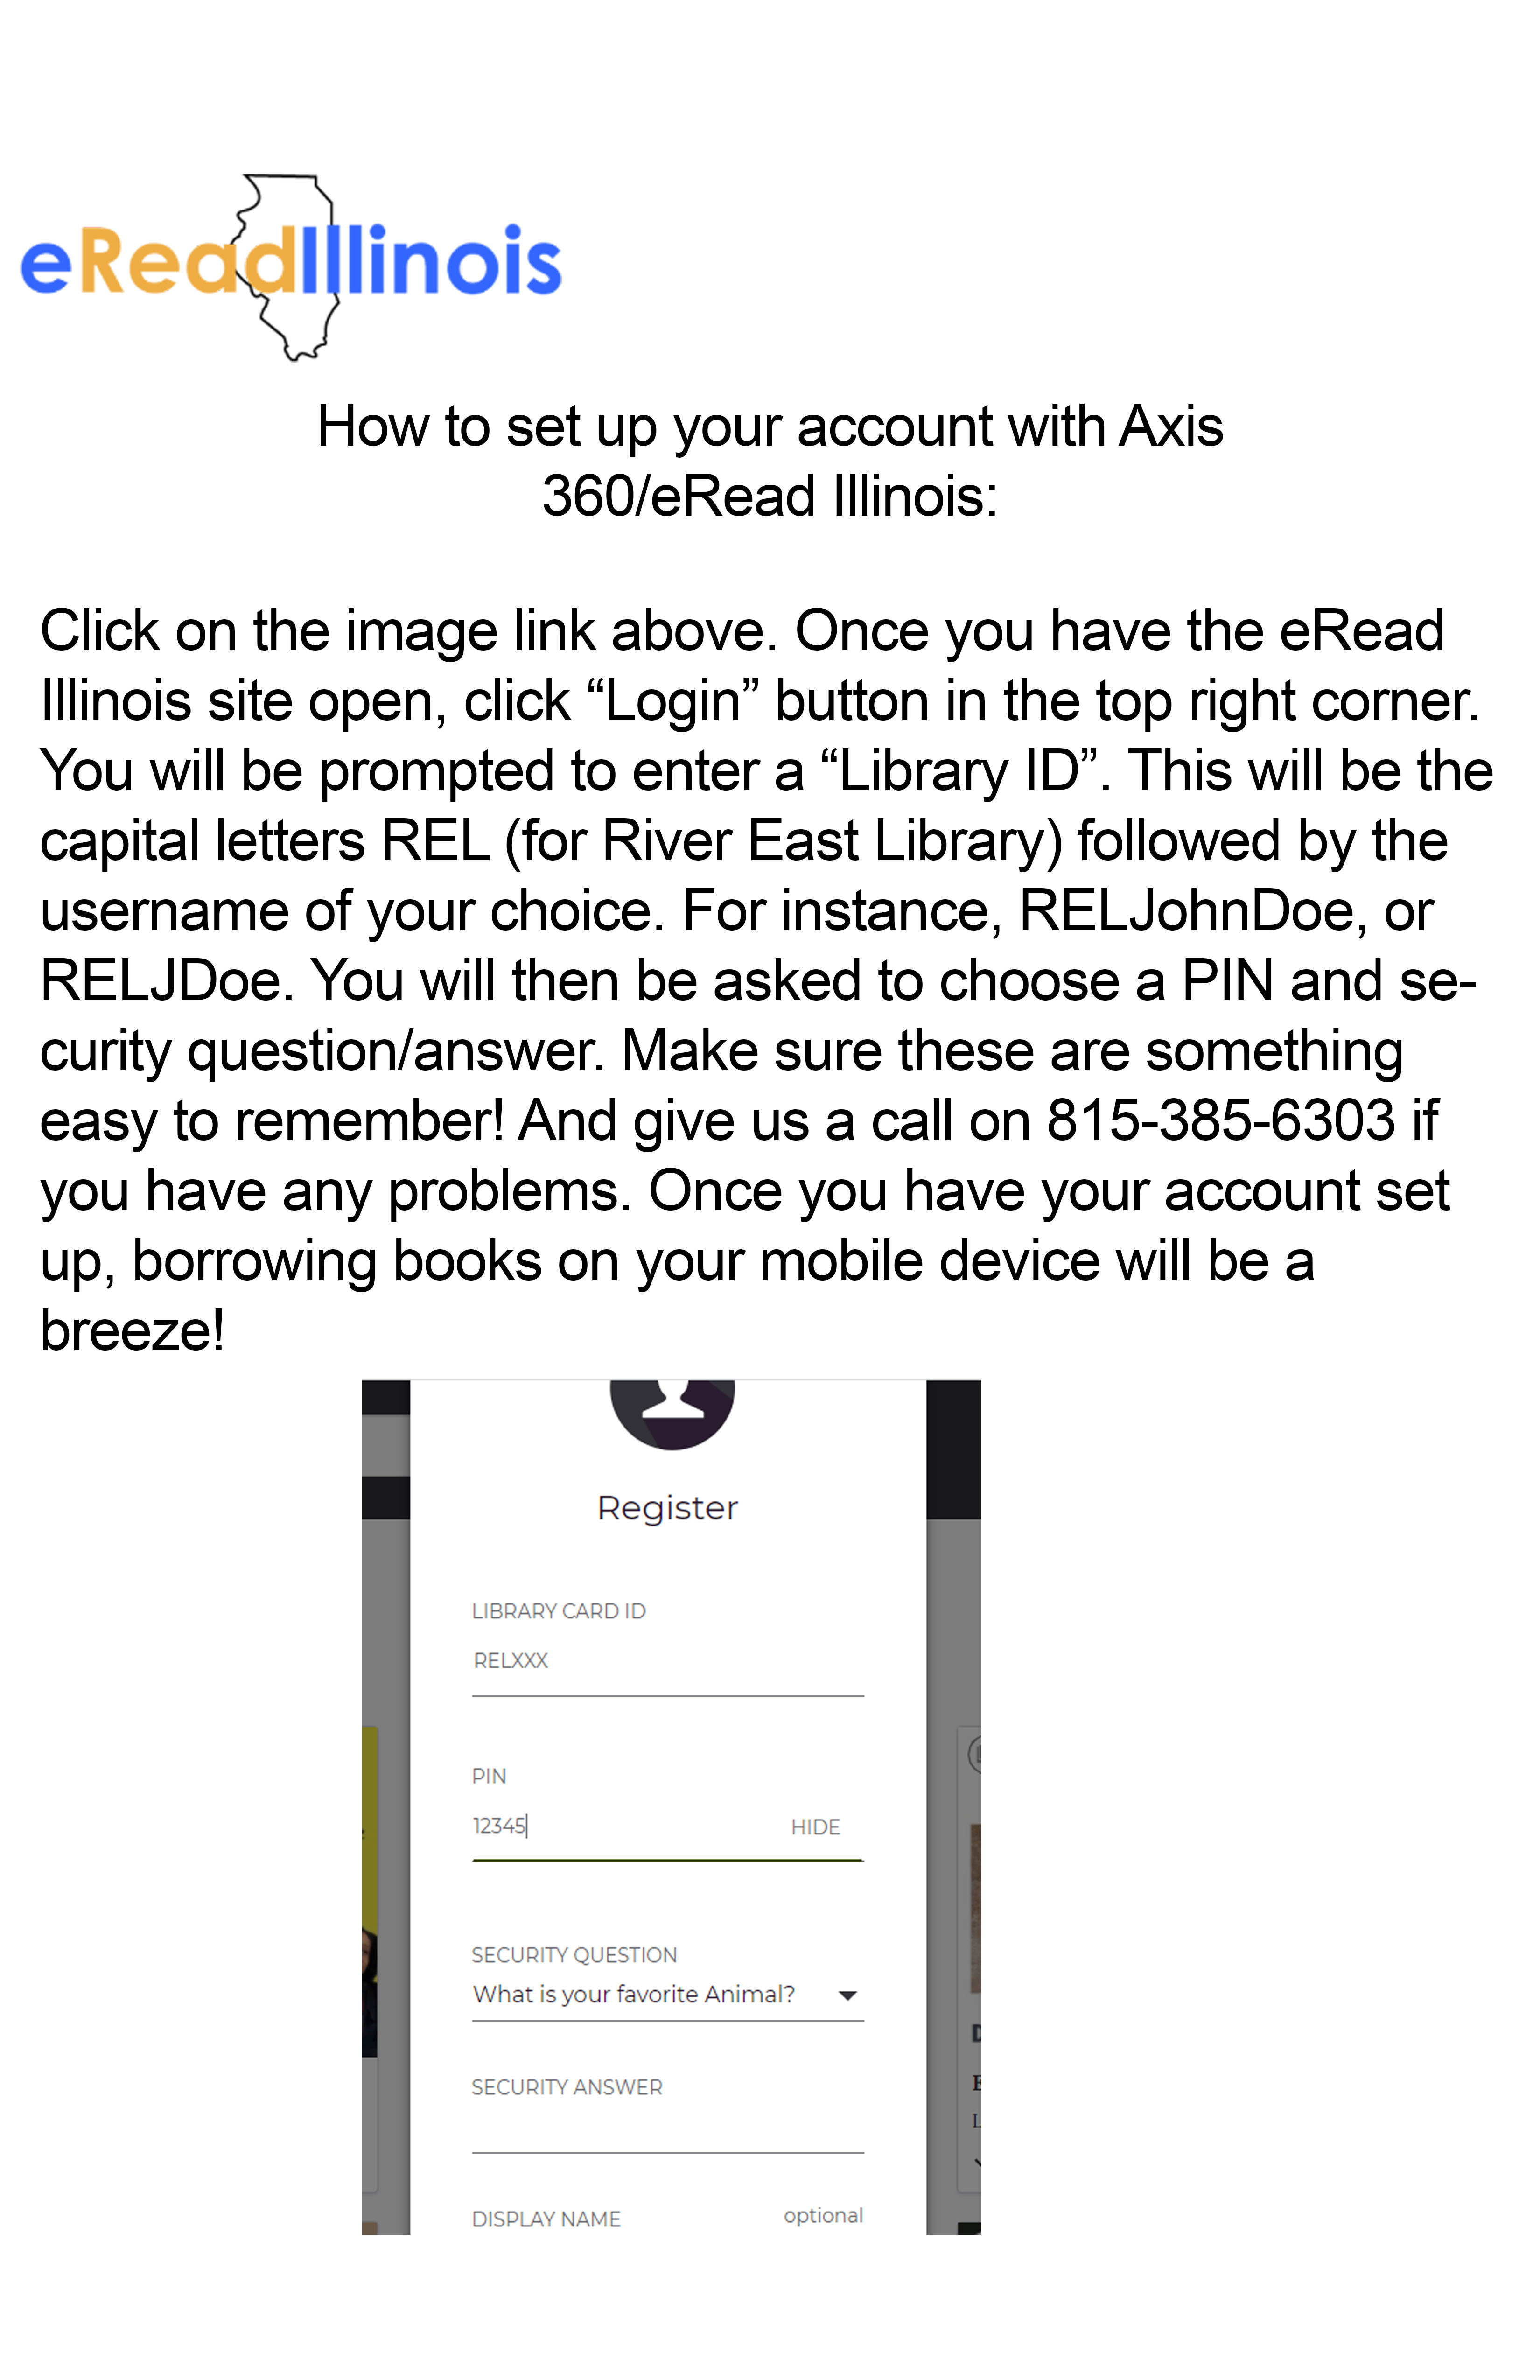 Image detailing how to login to Axis360/eRead Illinois